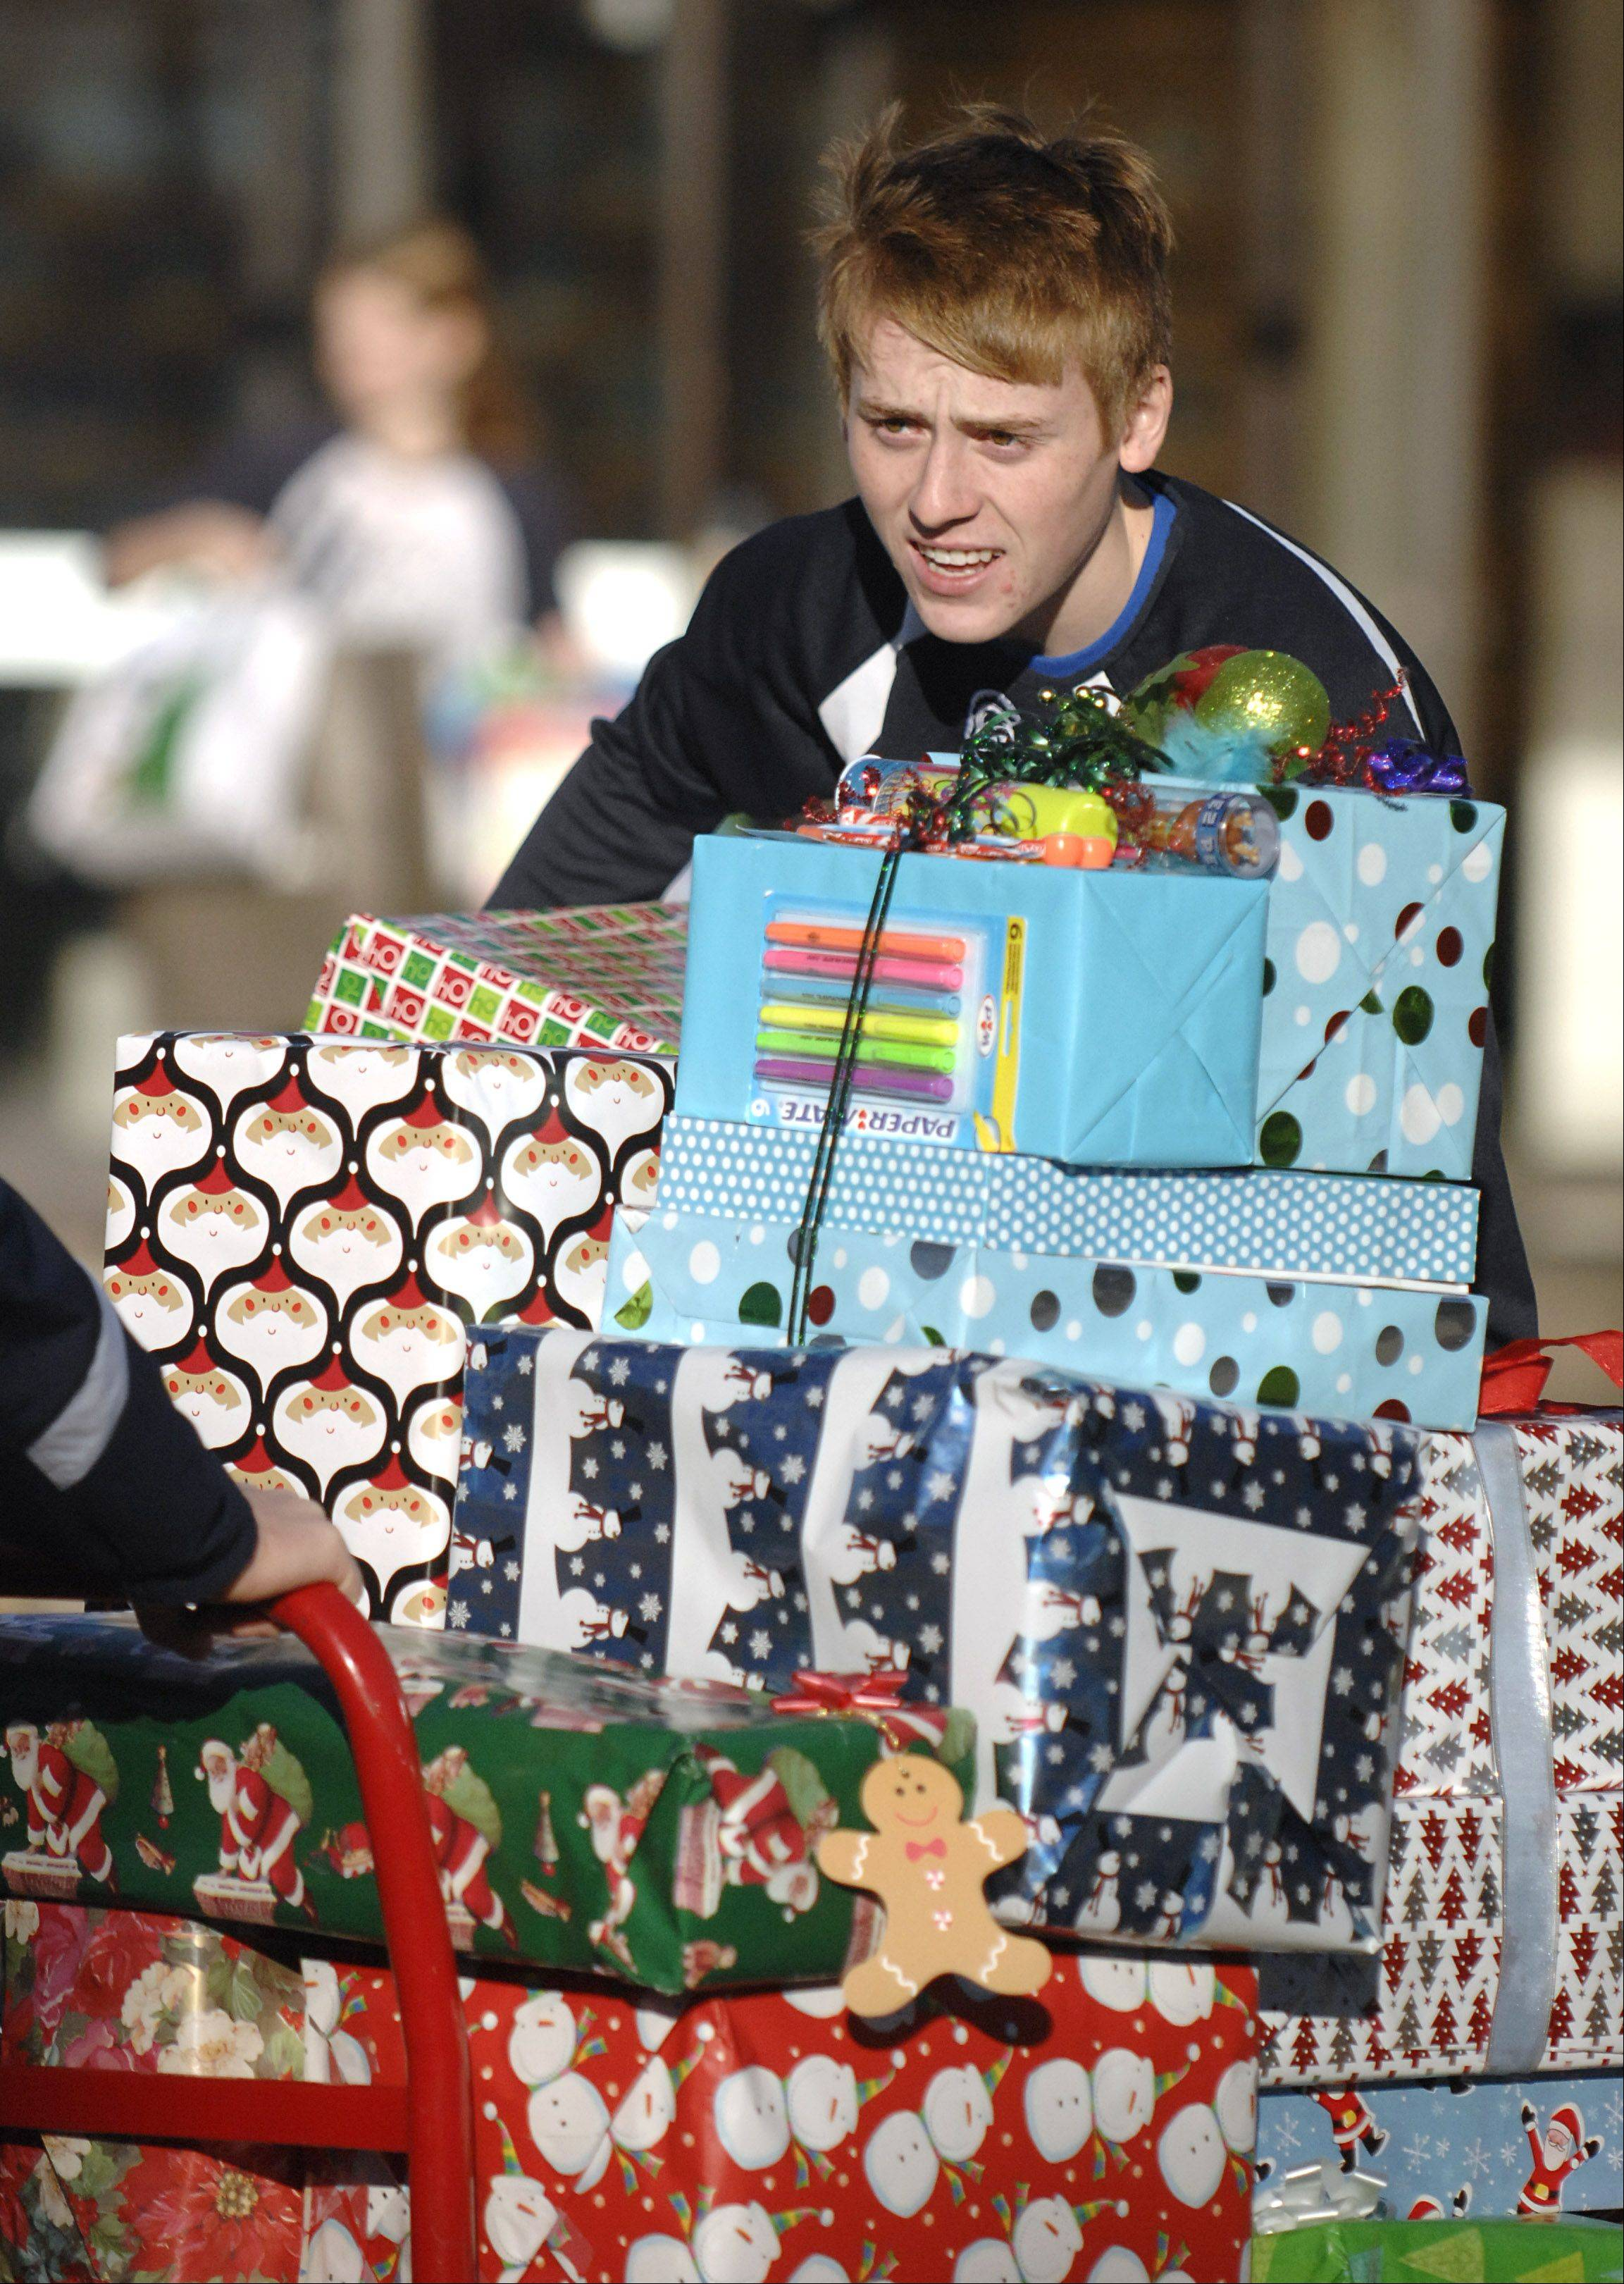 Cary-Grove High School student Brian O'Connor, 17, steadies a push cart full of donated presents while a classmate pulls it to the truck bound Thursday for the Richard J. Daley Academy in the Back of the Yards neighborhood in Chicago.